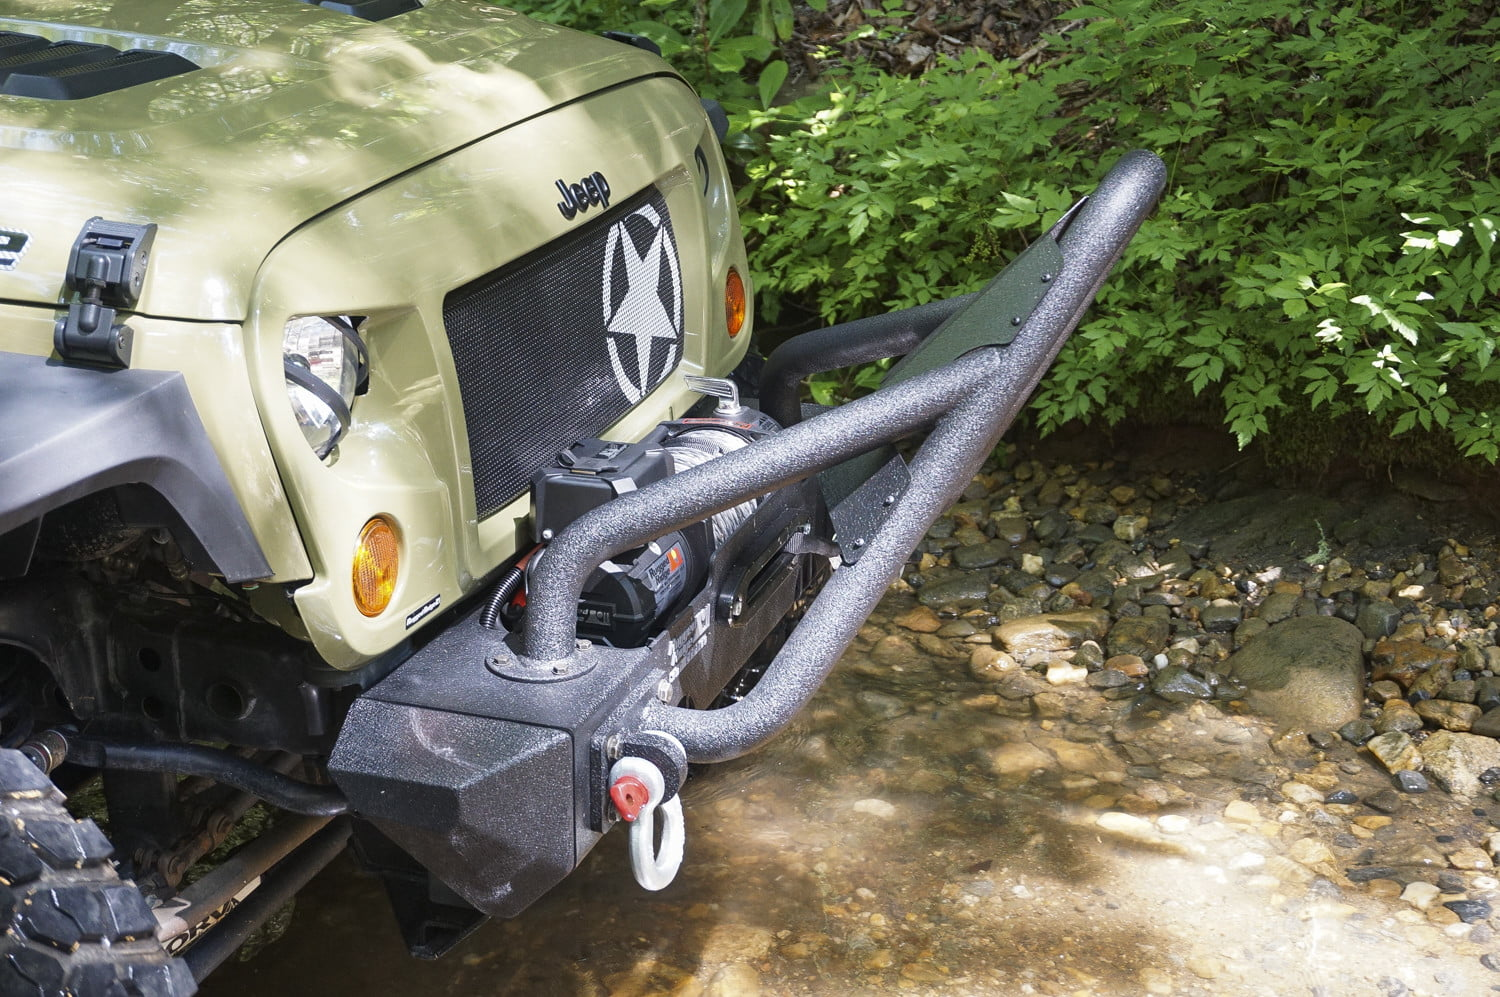 Front grill and winch of a Green Jeep Wrangler Unlimited